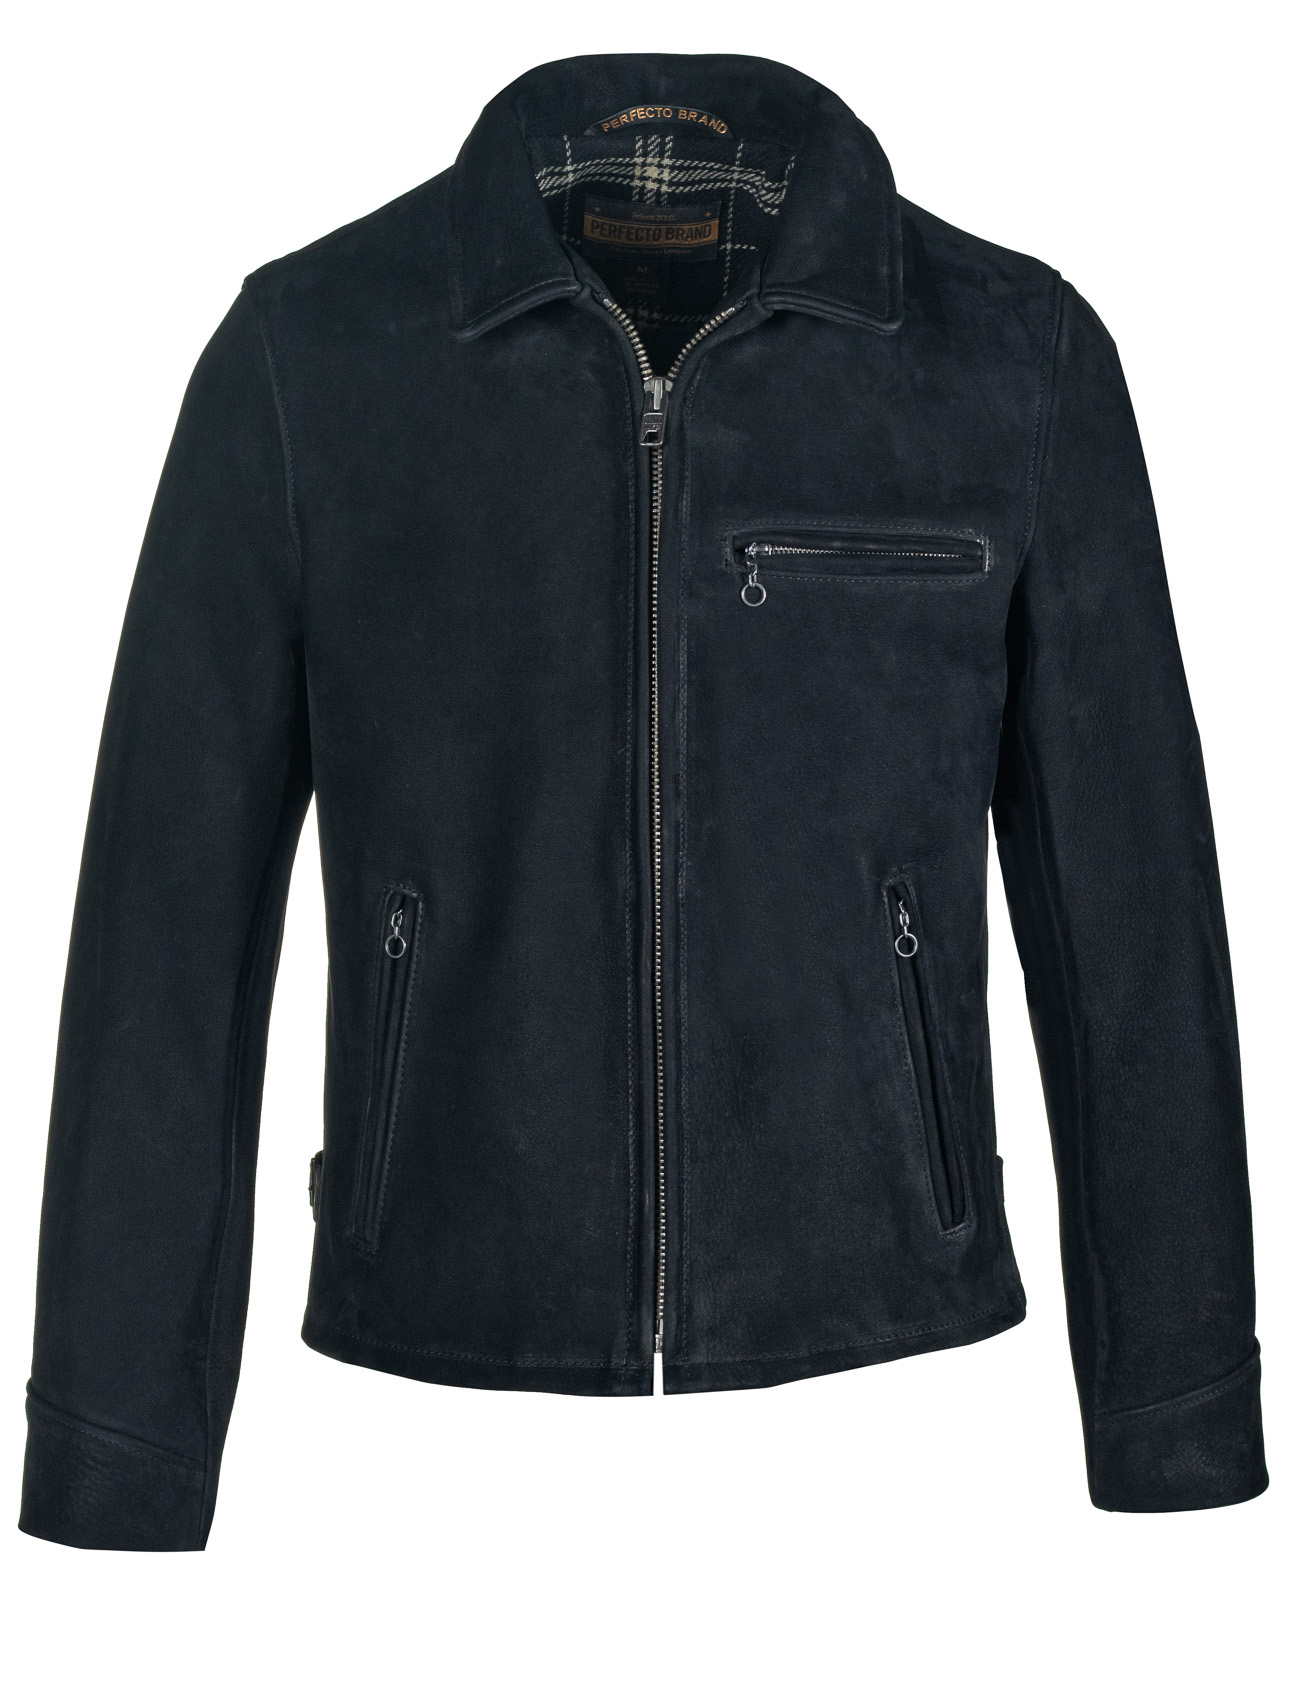 Perfecto® Brand P673 Storm - Heavyweight Oiled Nubuck Leather Biker Jacket